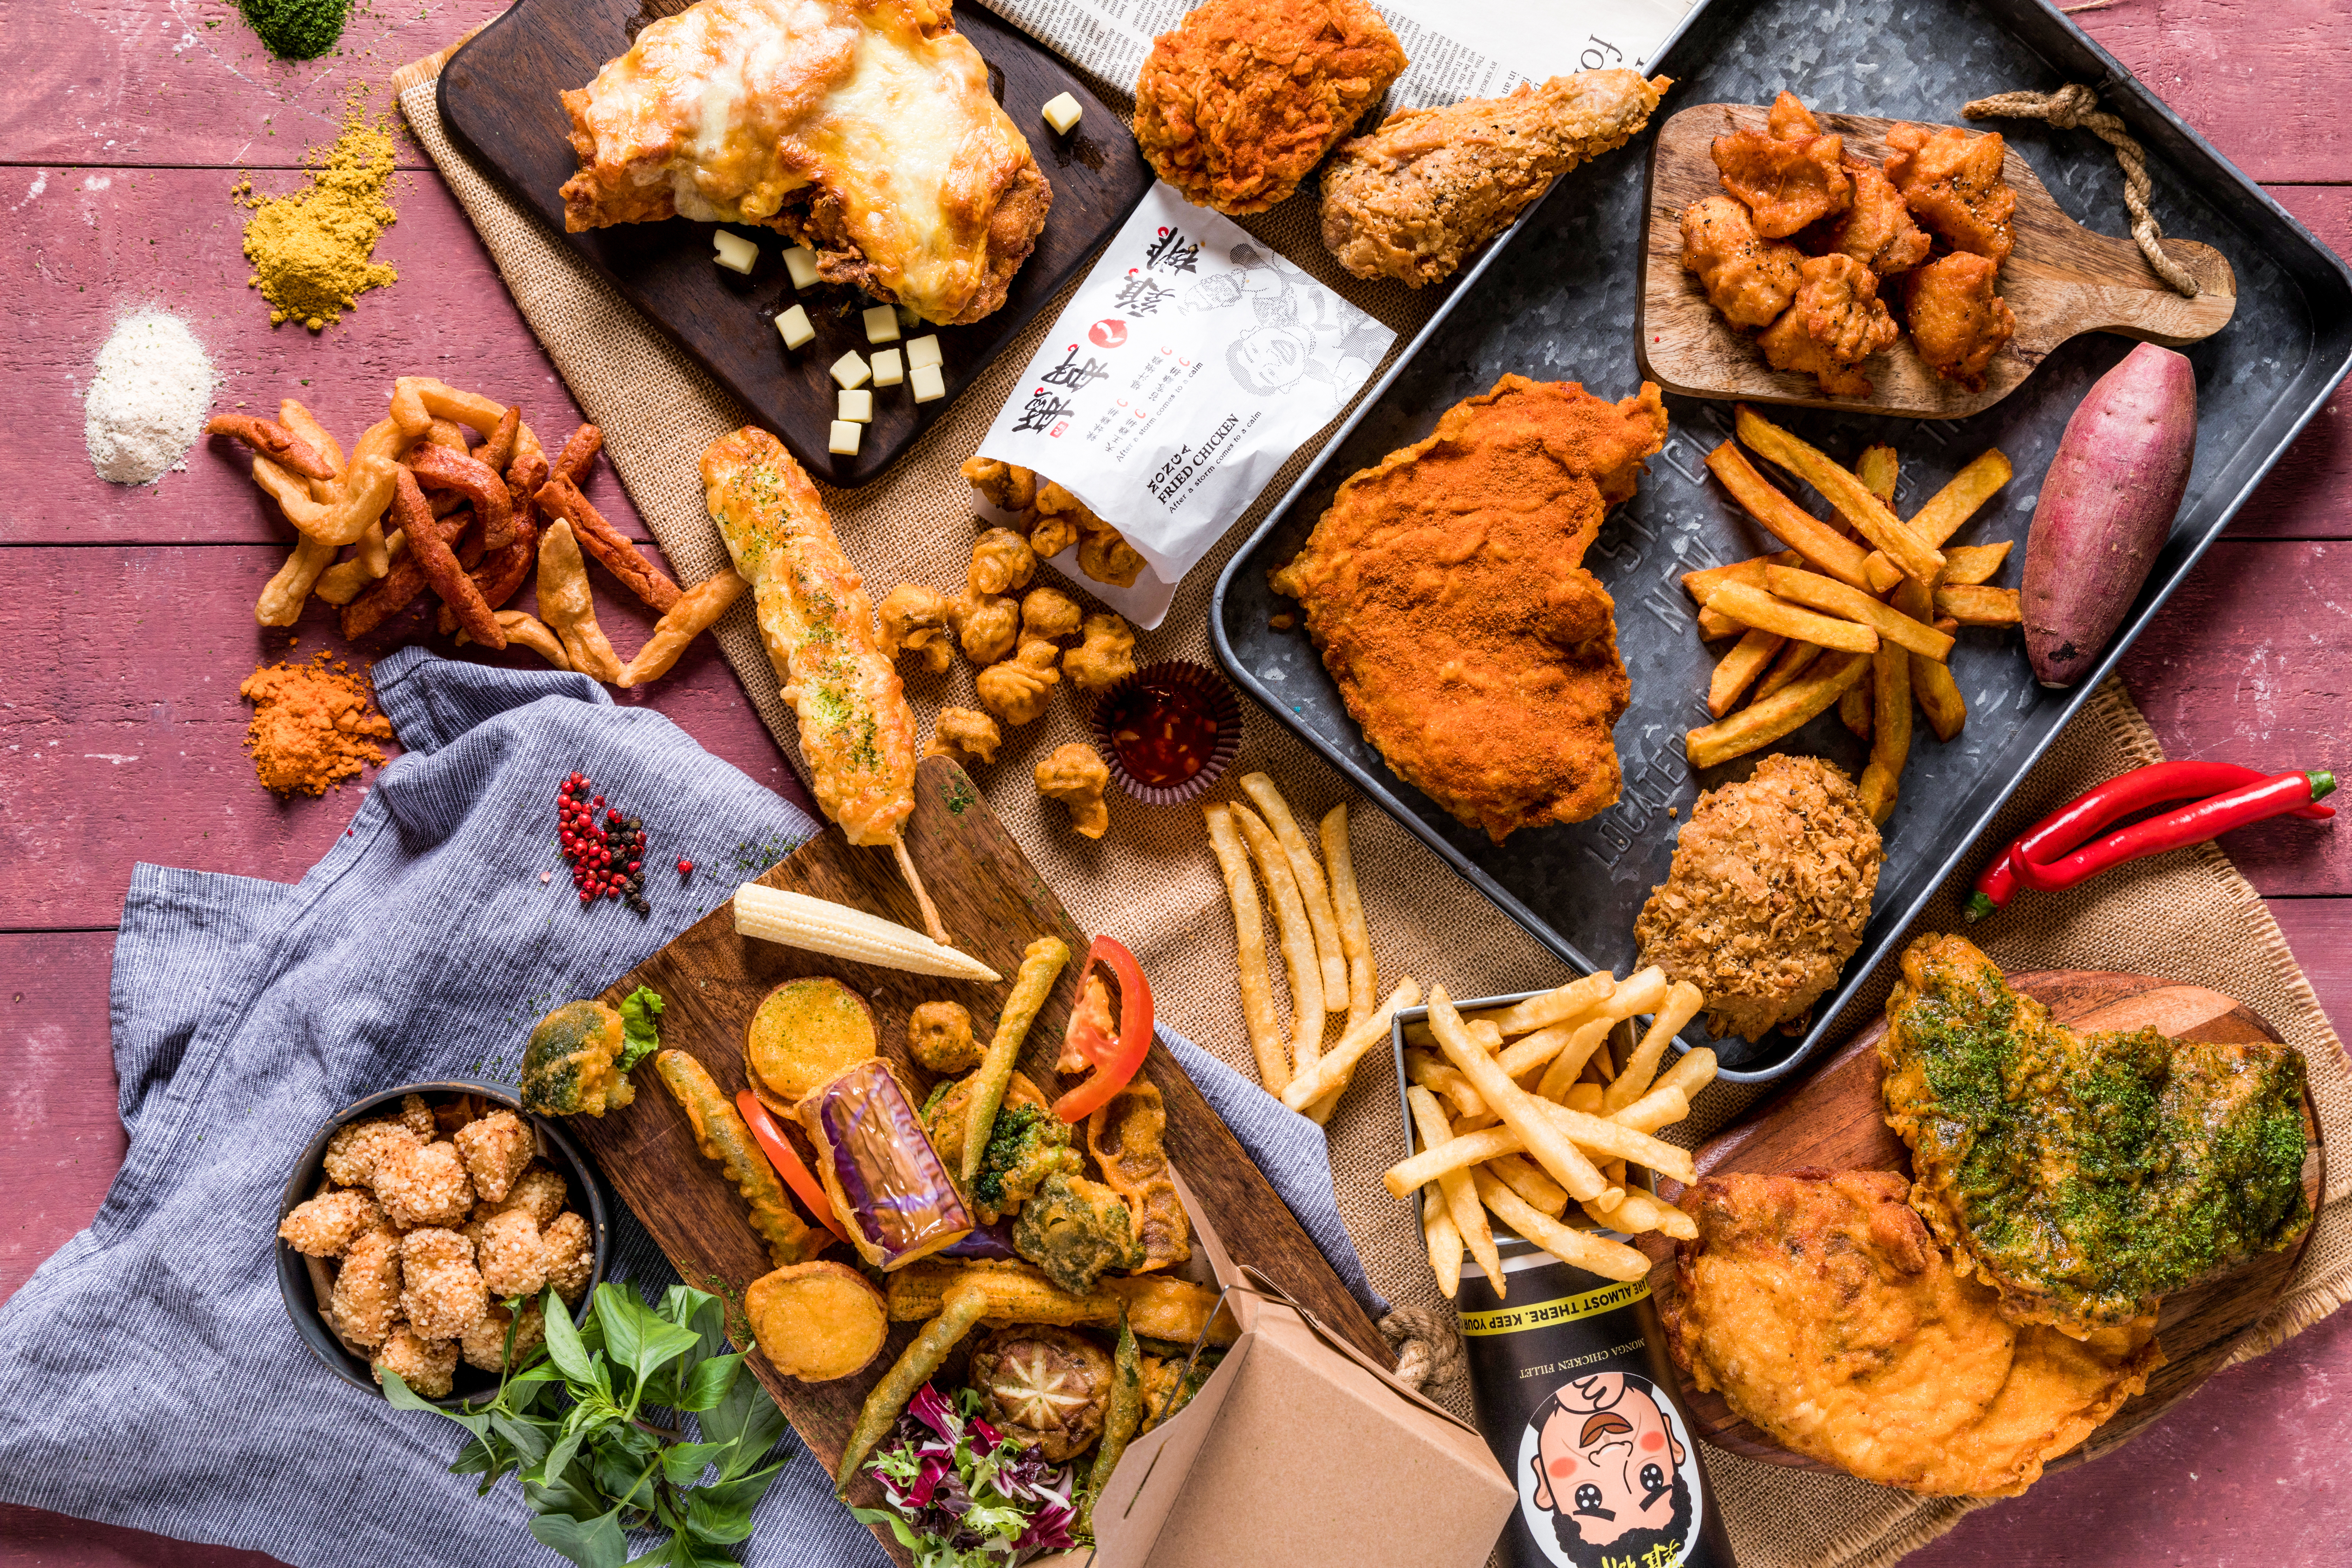 Ahead of Chinese New Year, Monga Fried Chicken will mark its European debut when it open son Macclesfield Street in London's Chinatown this month